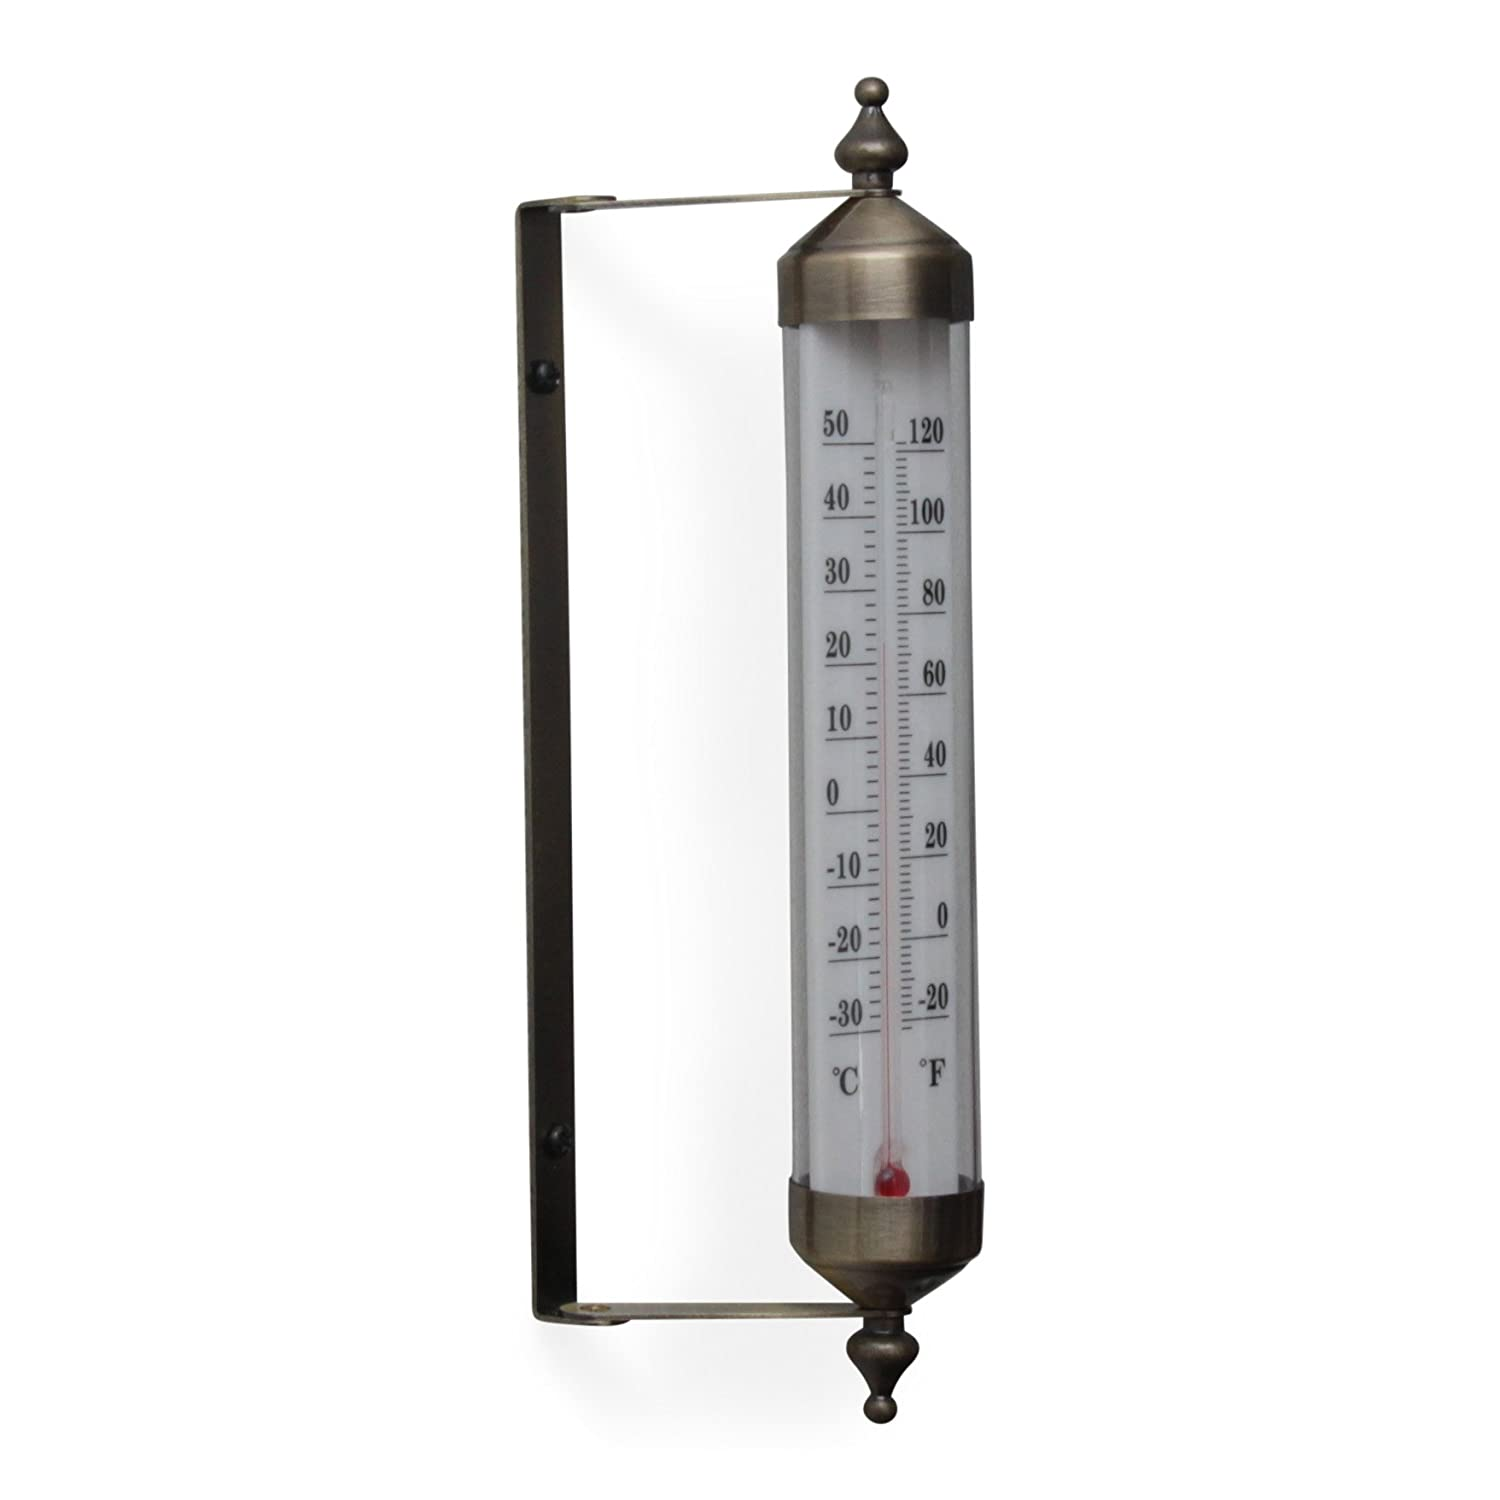 Adjustable Angle 10 Inch Garden Thermometer (Bronze) Bjerg Instruments